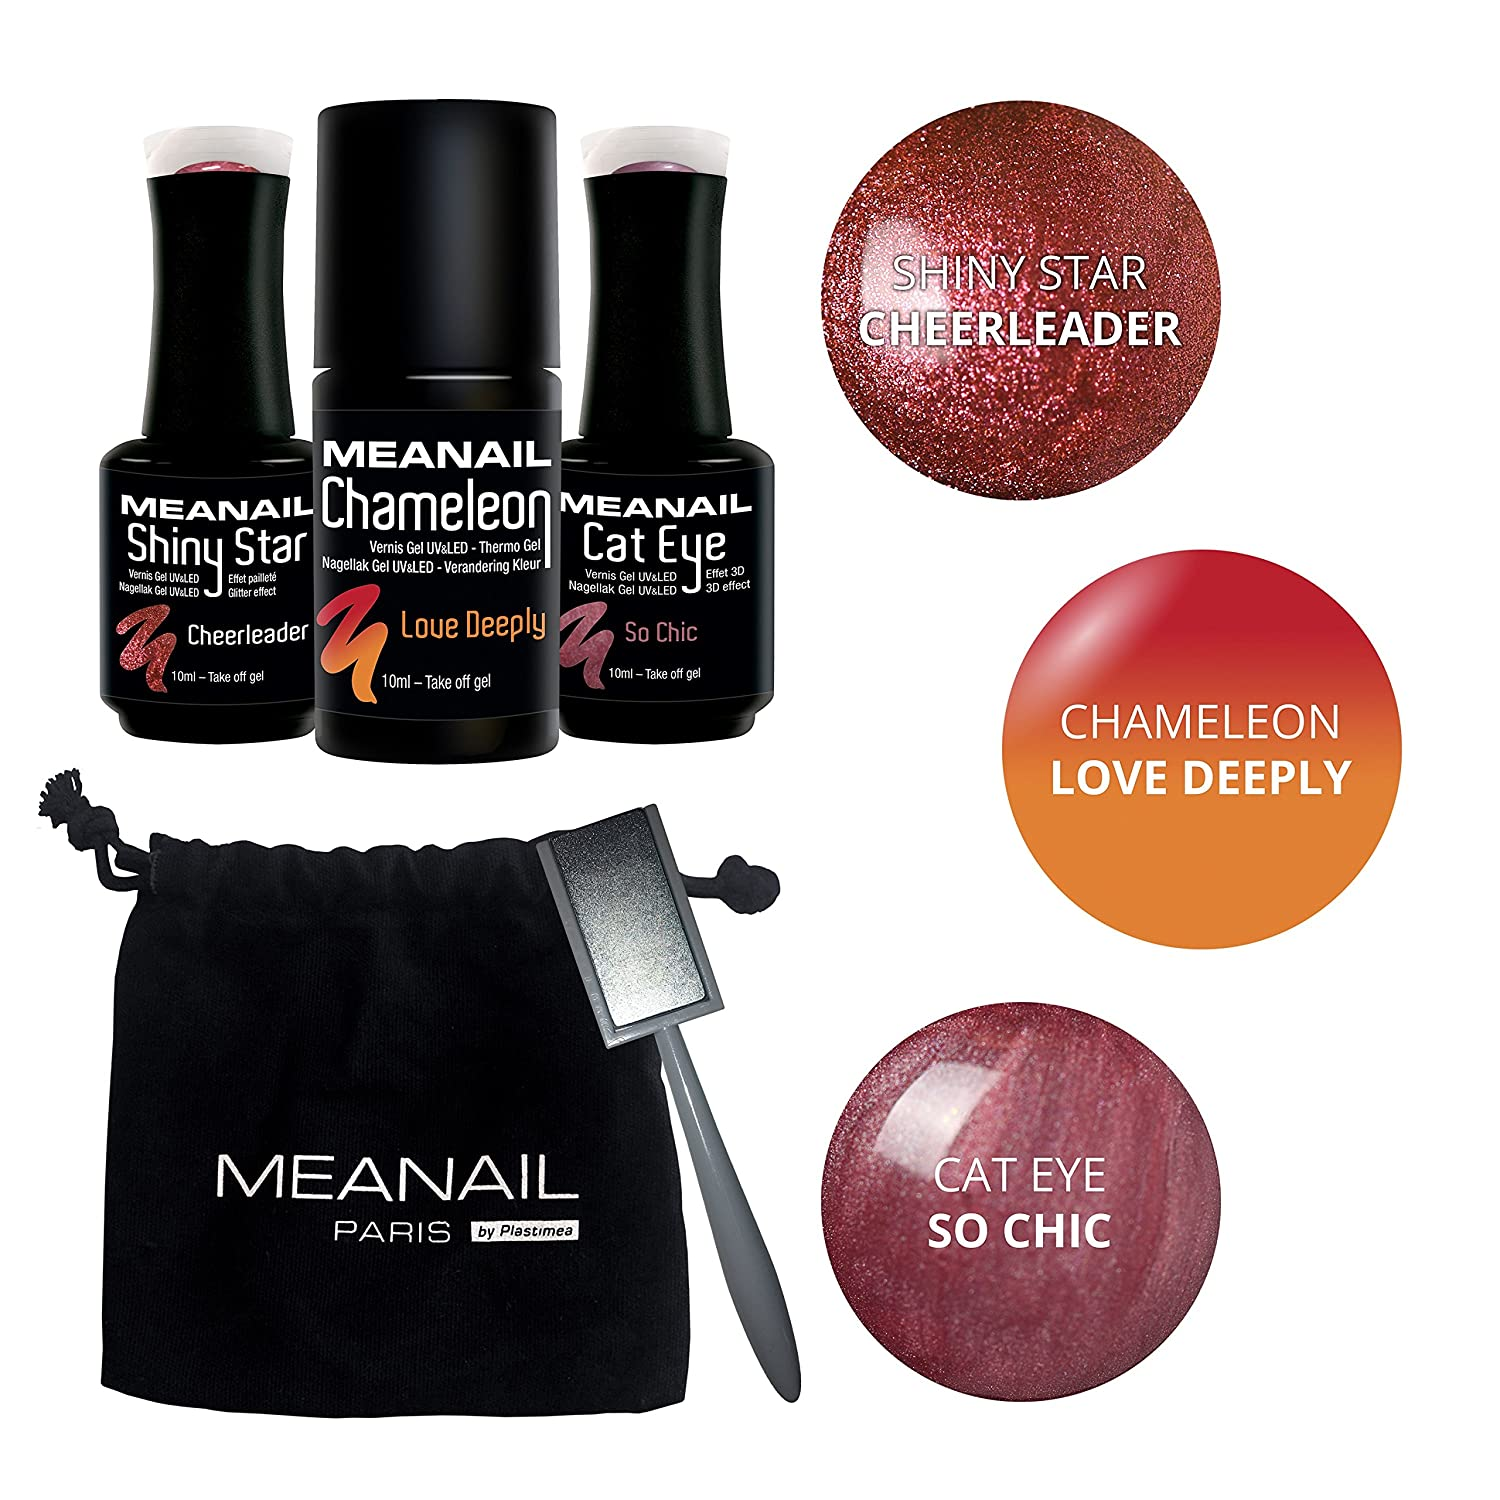 MEANAIL ® PARIS TRIO SET - Cofanetto di 3 Gel Polish CAT EYE Chameleon Shiny Star con Magnete - Nuance : Navy Motion Plastimea Pro+